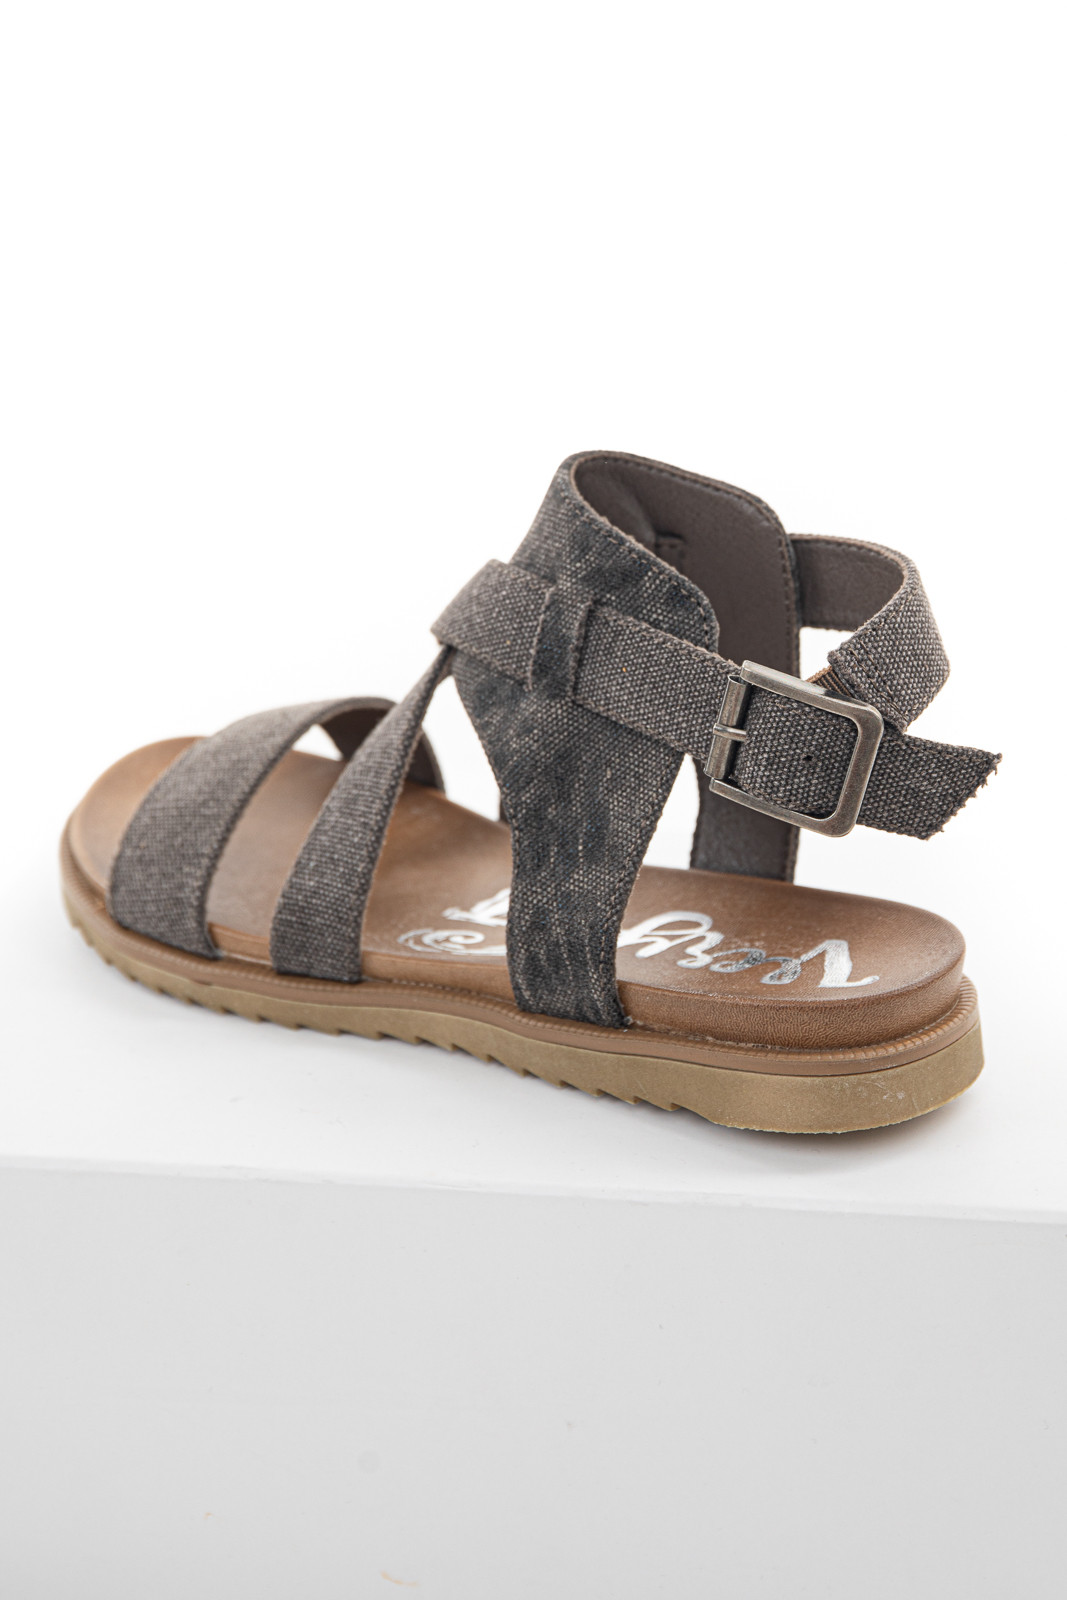 Faded Coffee Textured Strappy Sandals with Buckle Closure